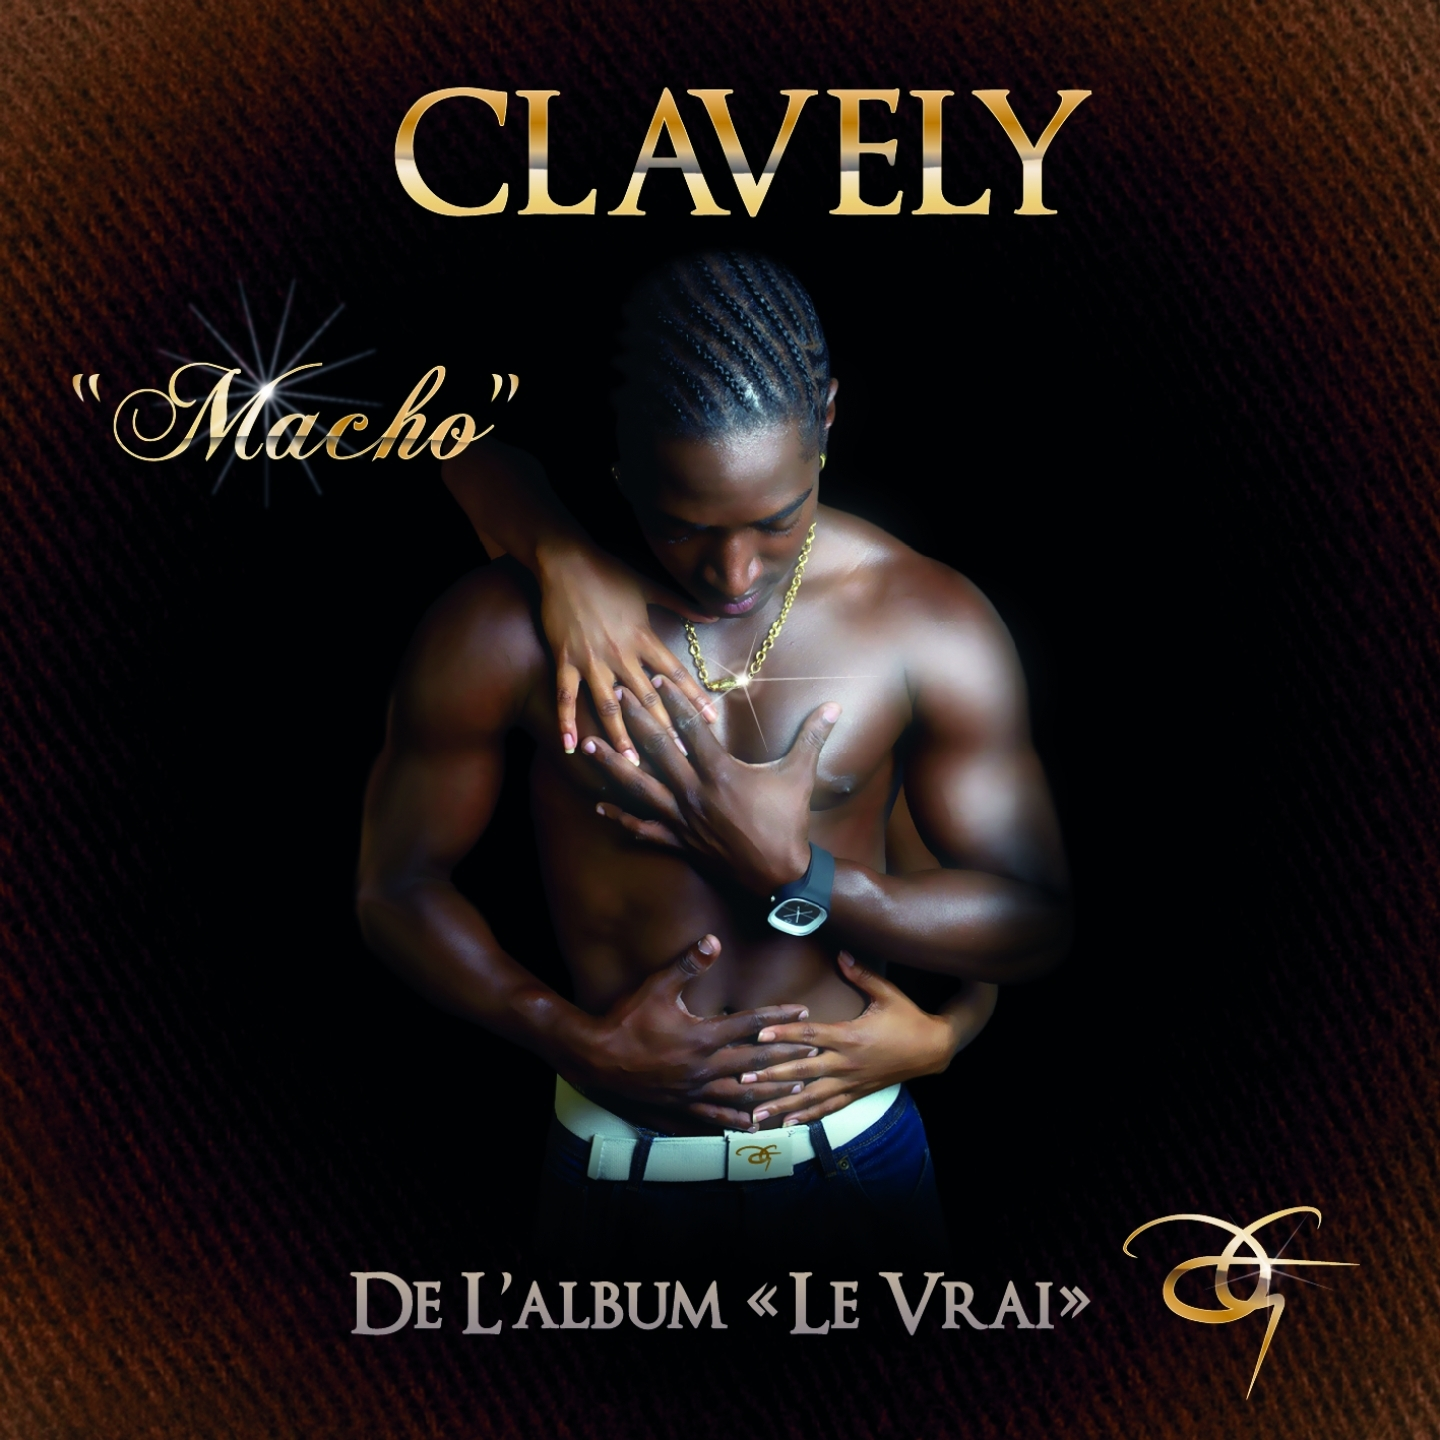 Clavely « Macho »